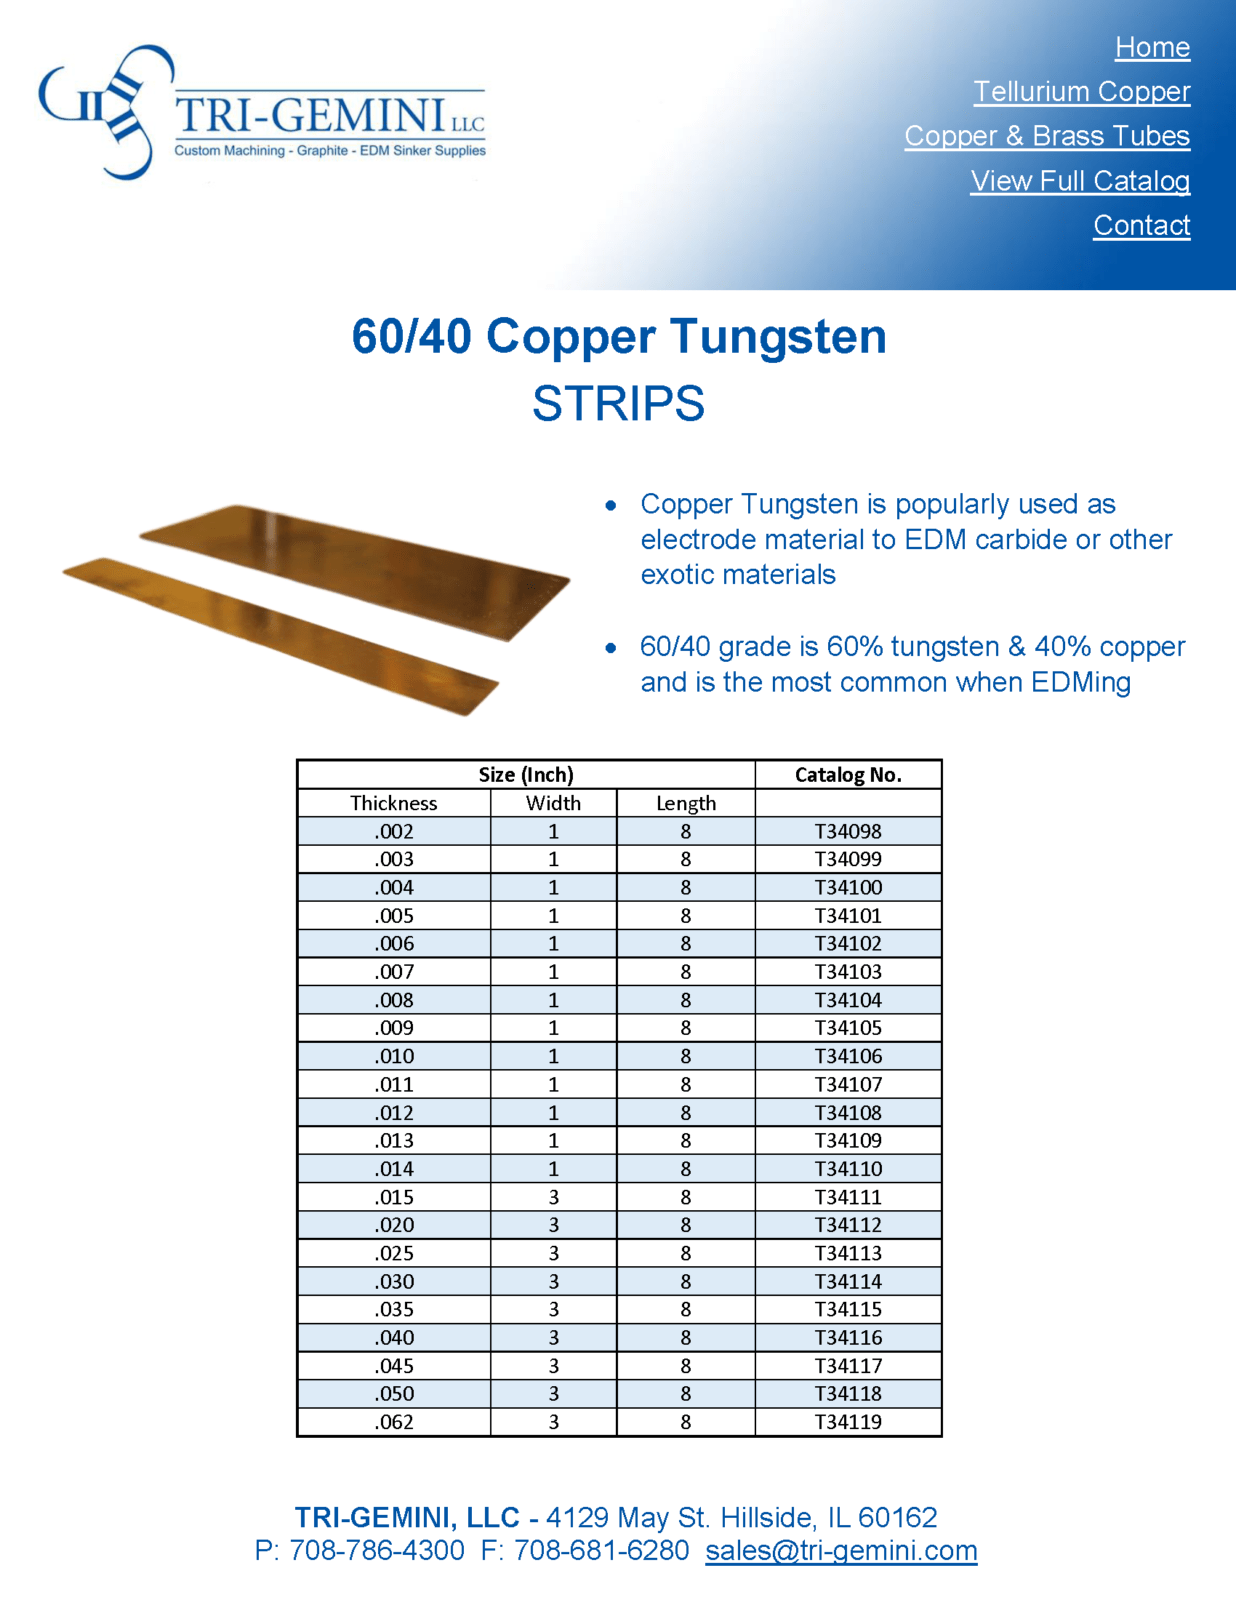 Copper Tungsten Strips